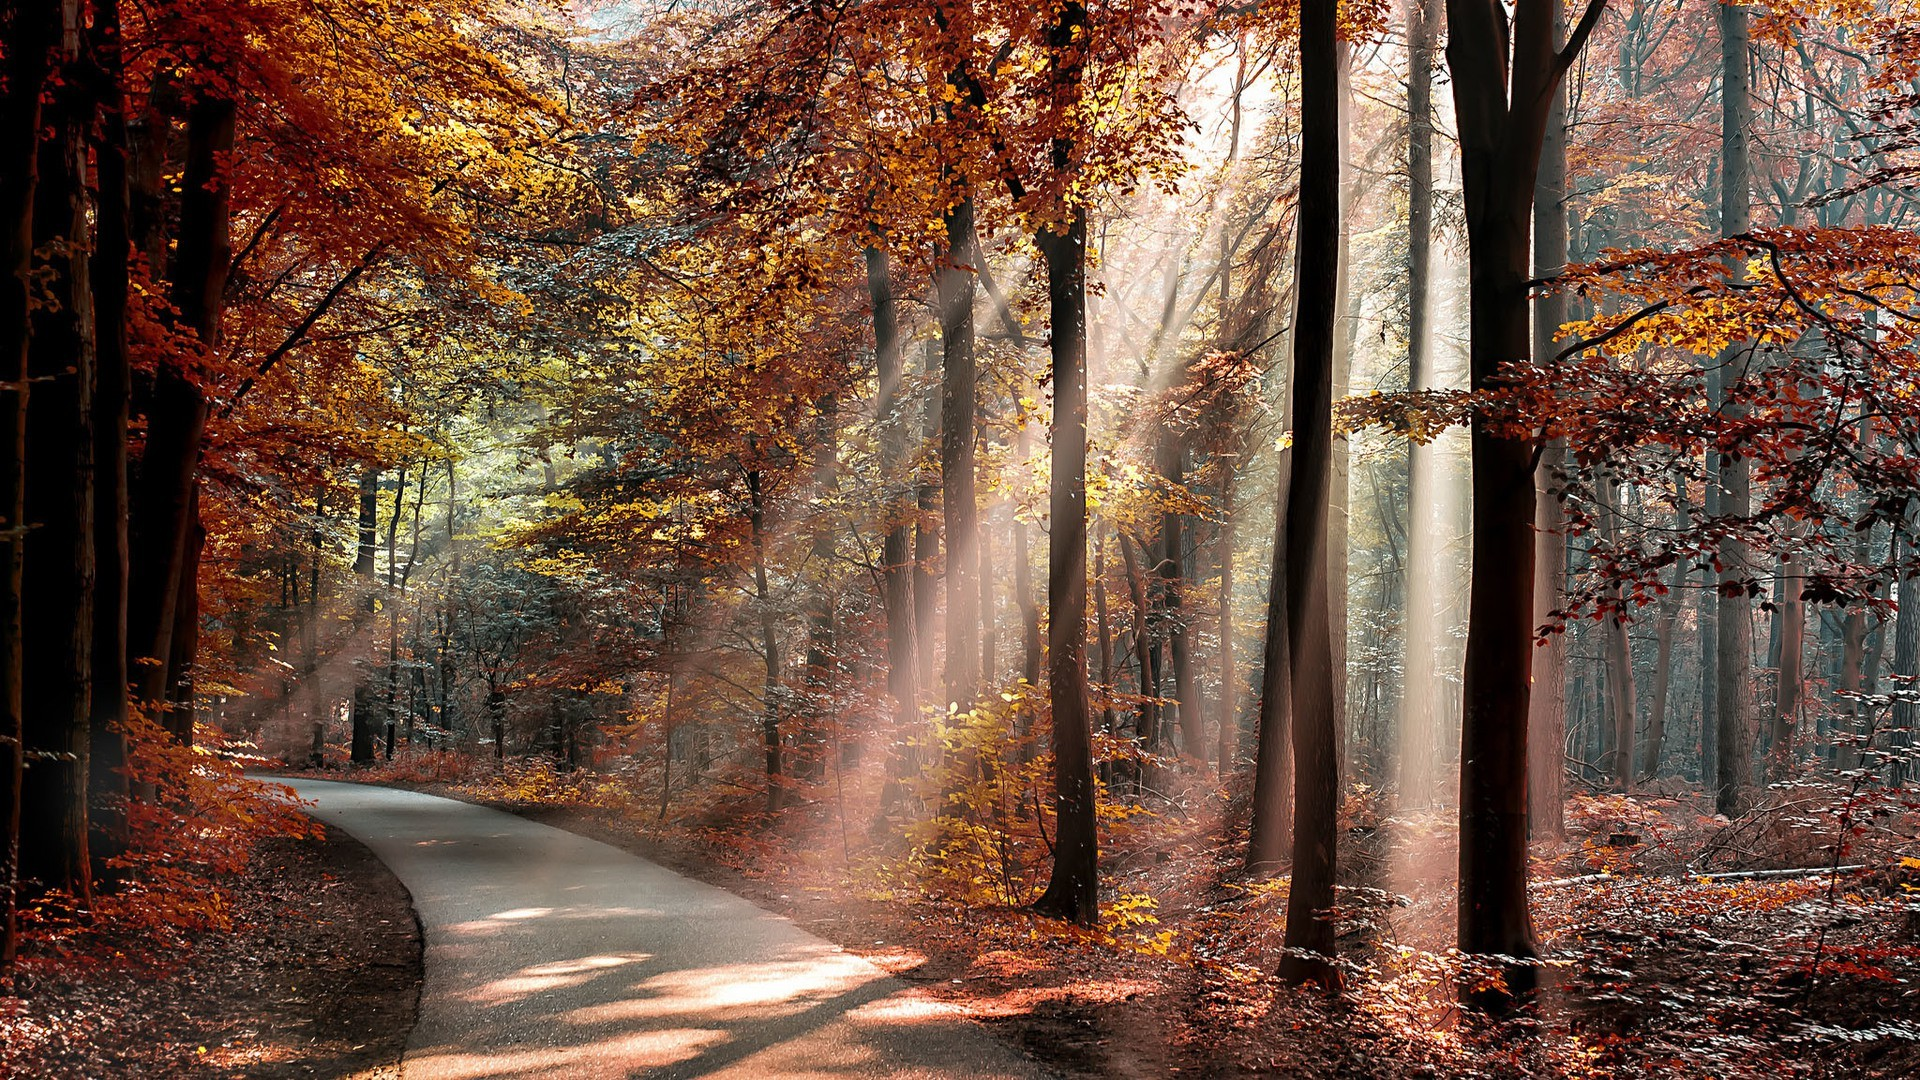 Fall Leaves Hd Wallpapers 1080p Nature Landscape Trees Forest Branch Sun Rays Road